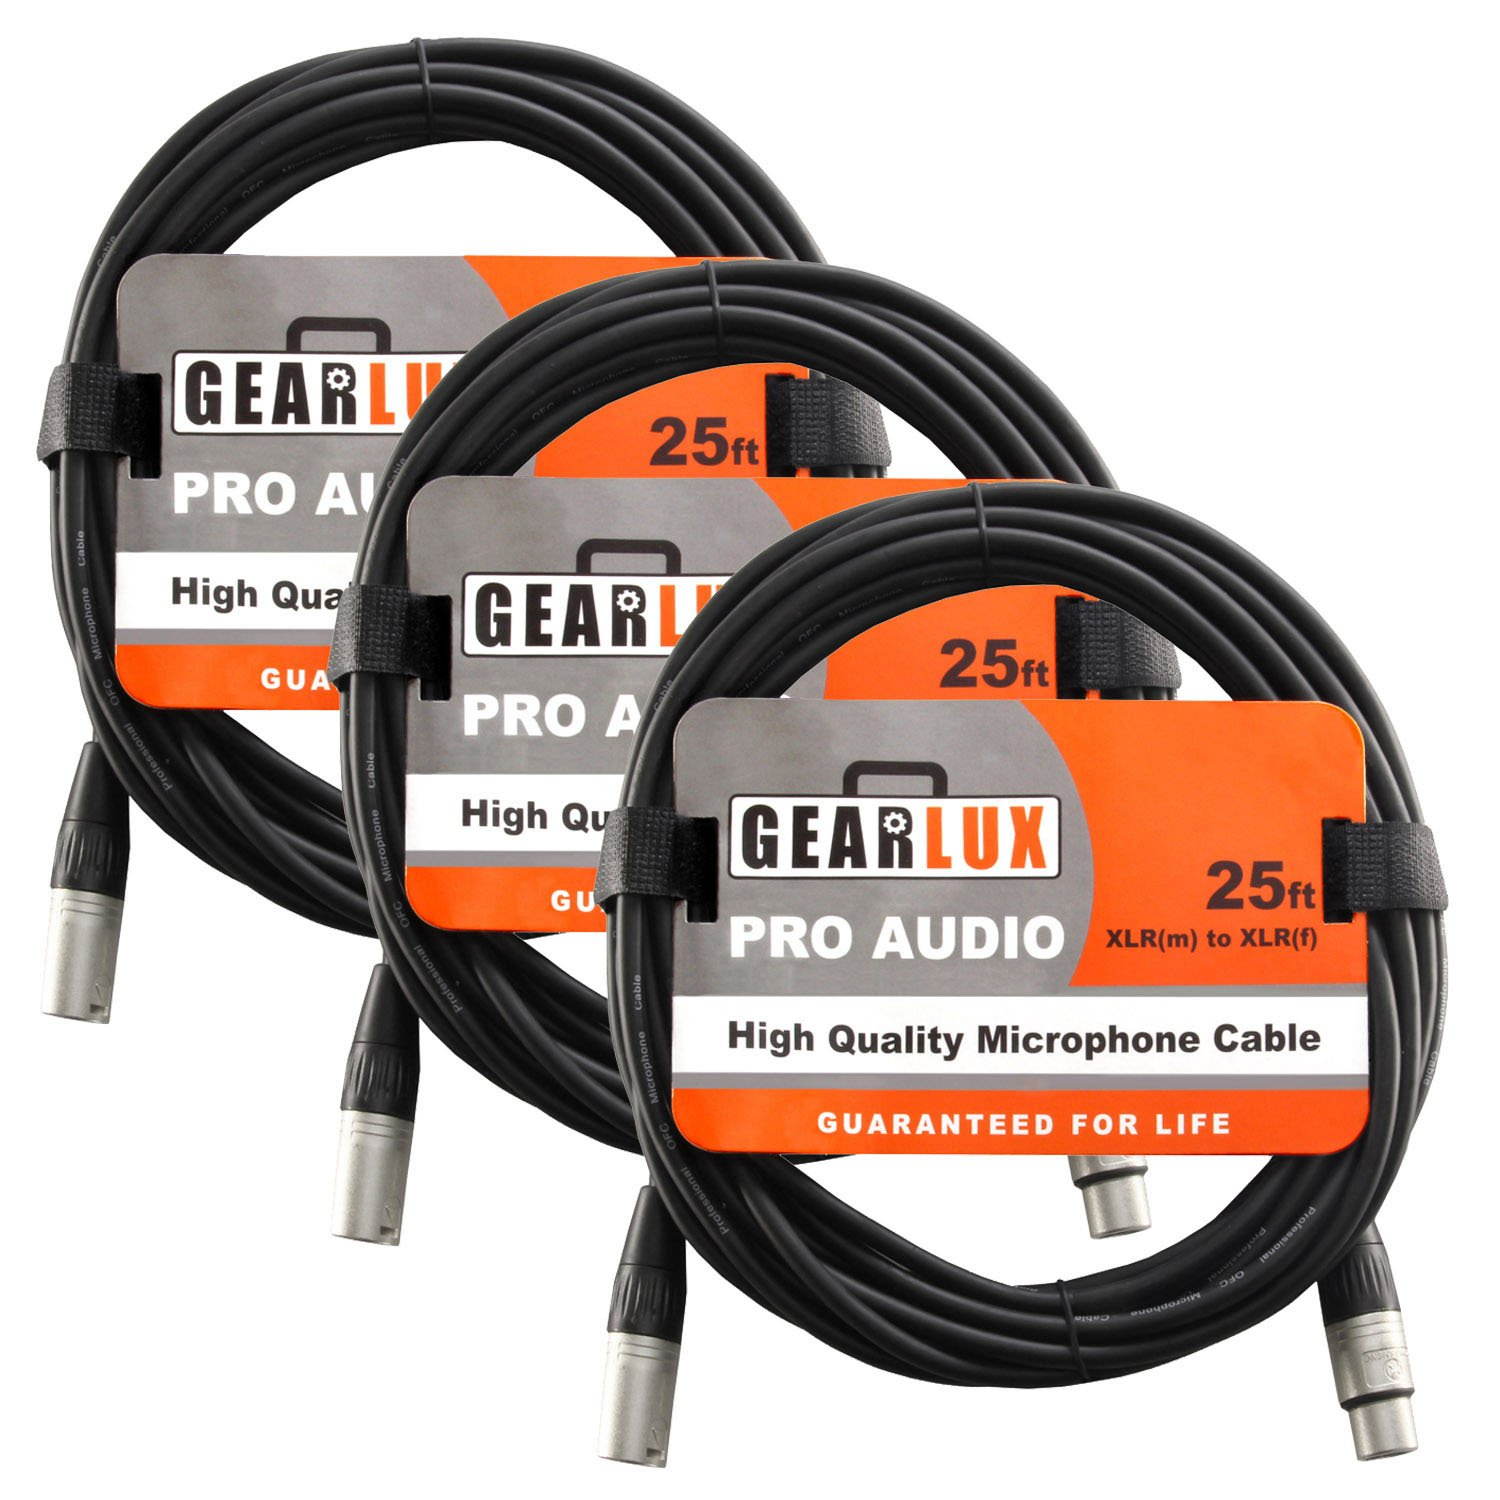 Gearlux XLR Microphone Cable, 25 Foot - 3 Pack